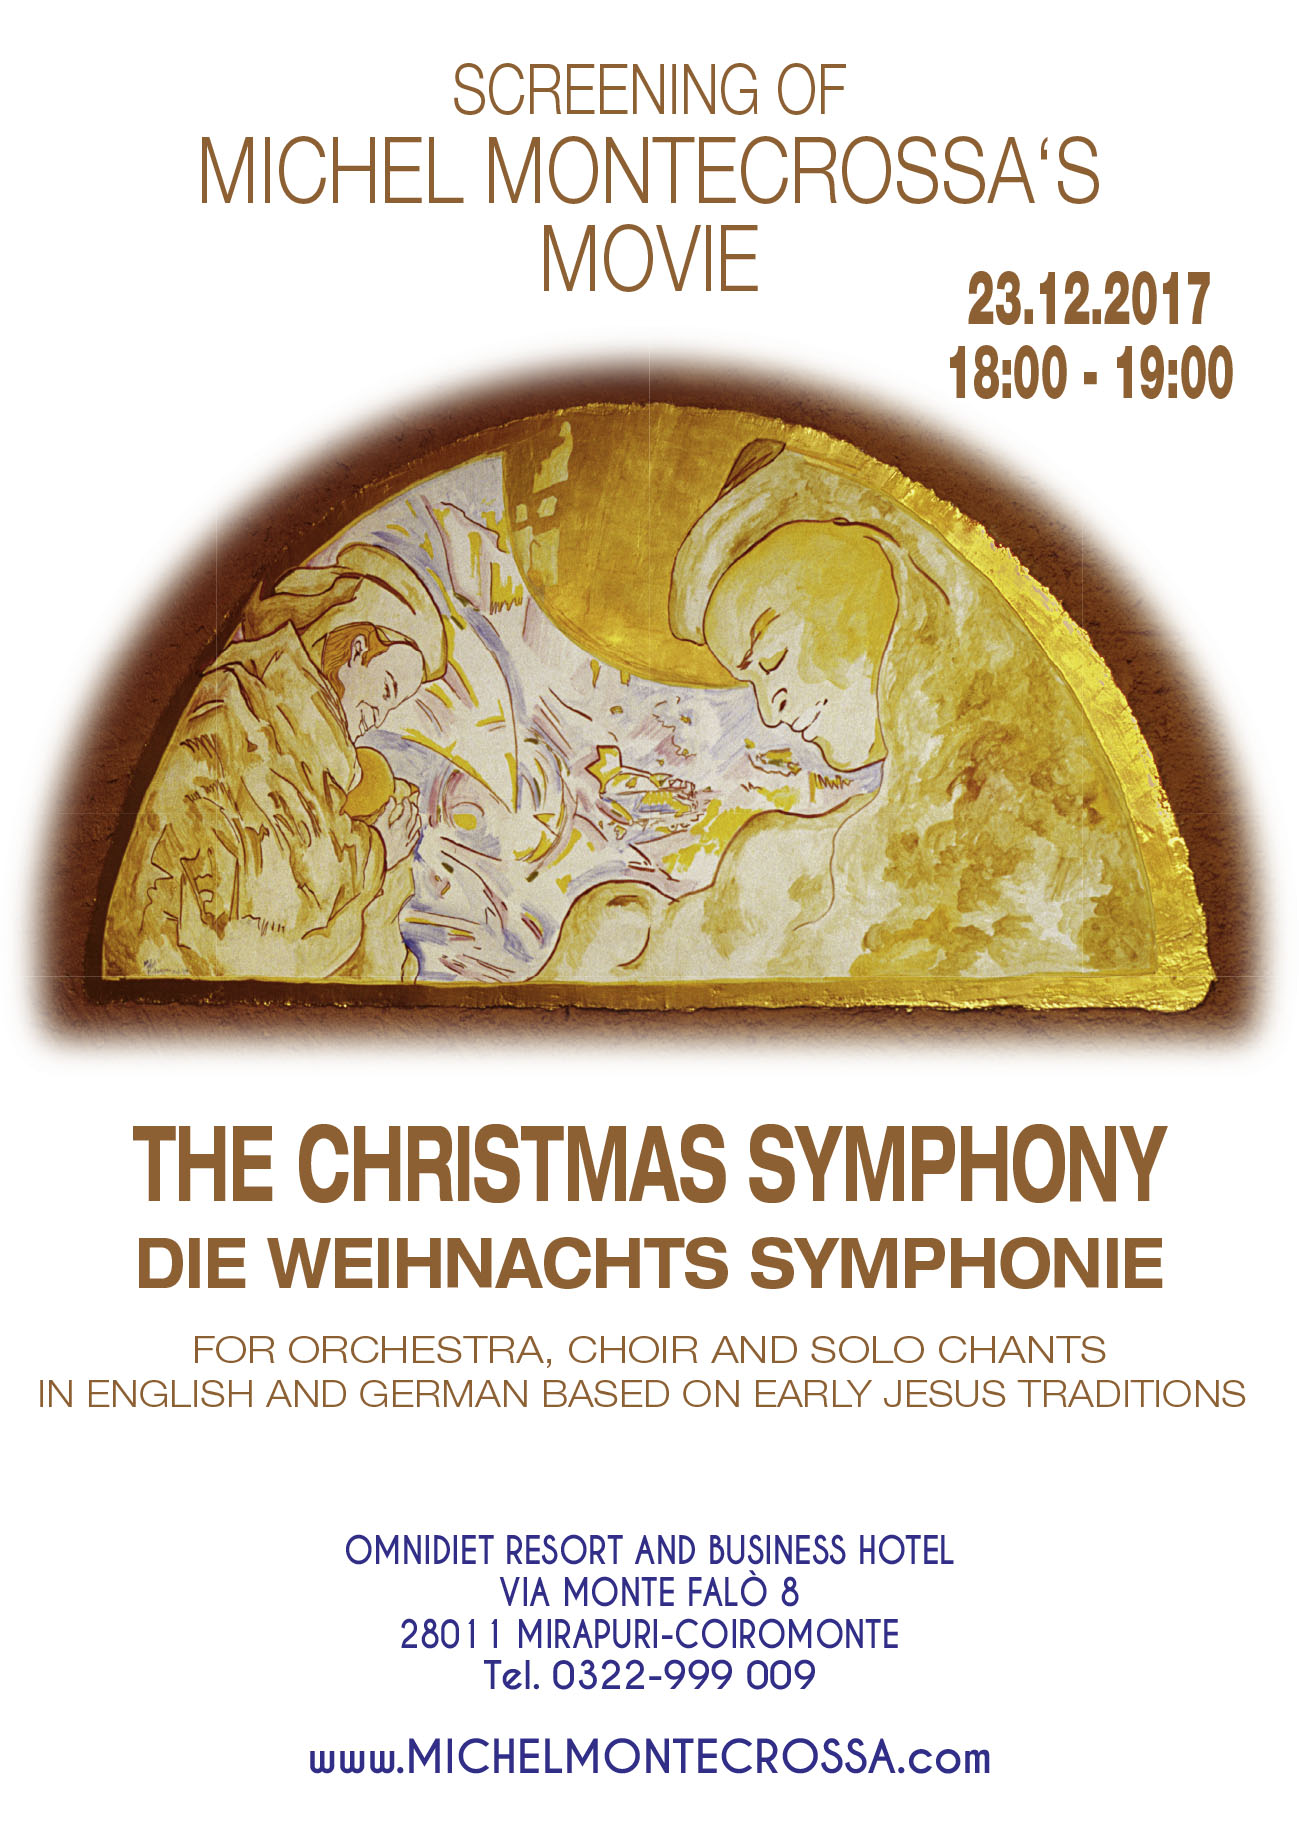 The Christmas Symphony Screening